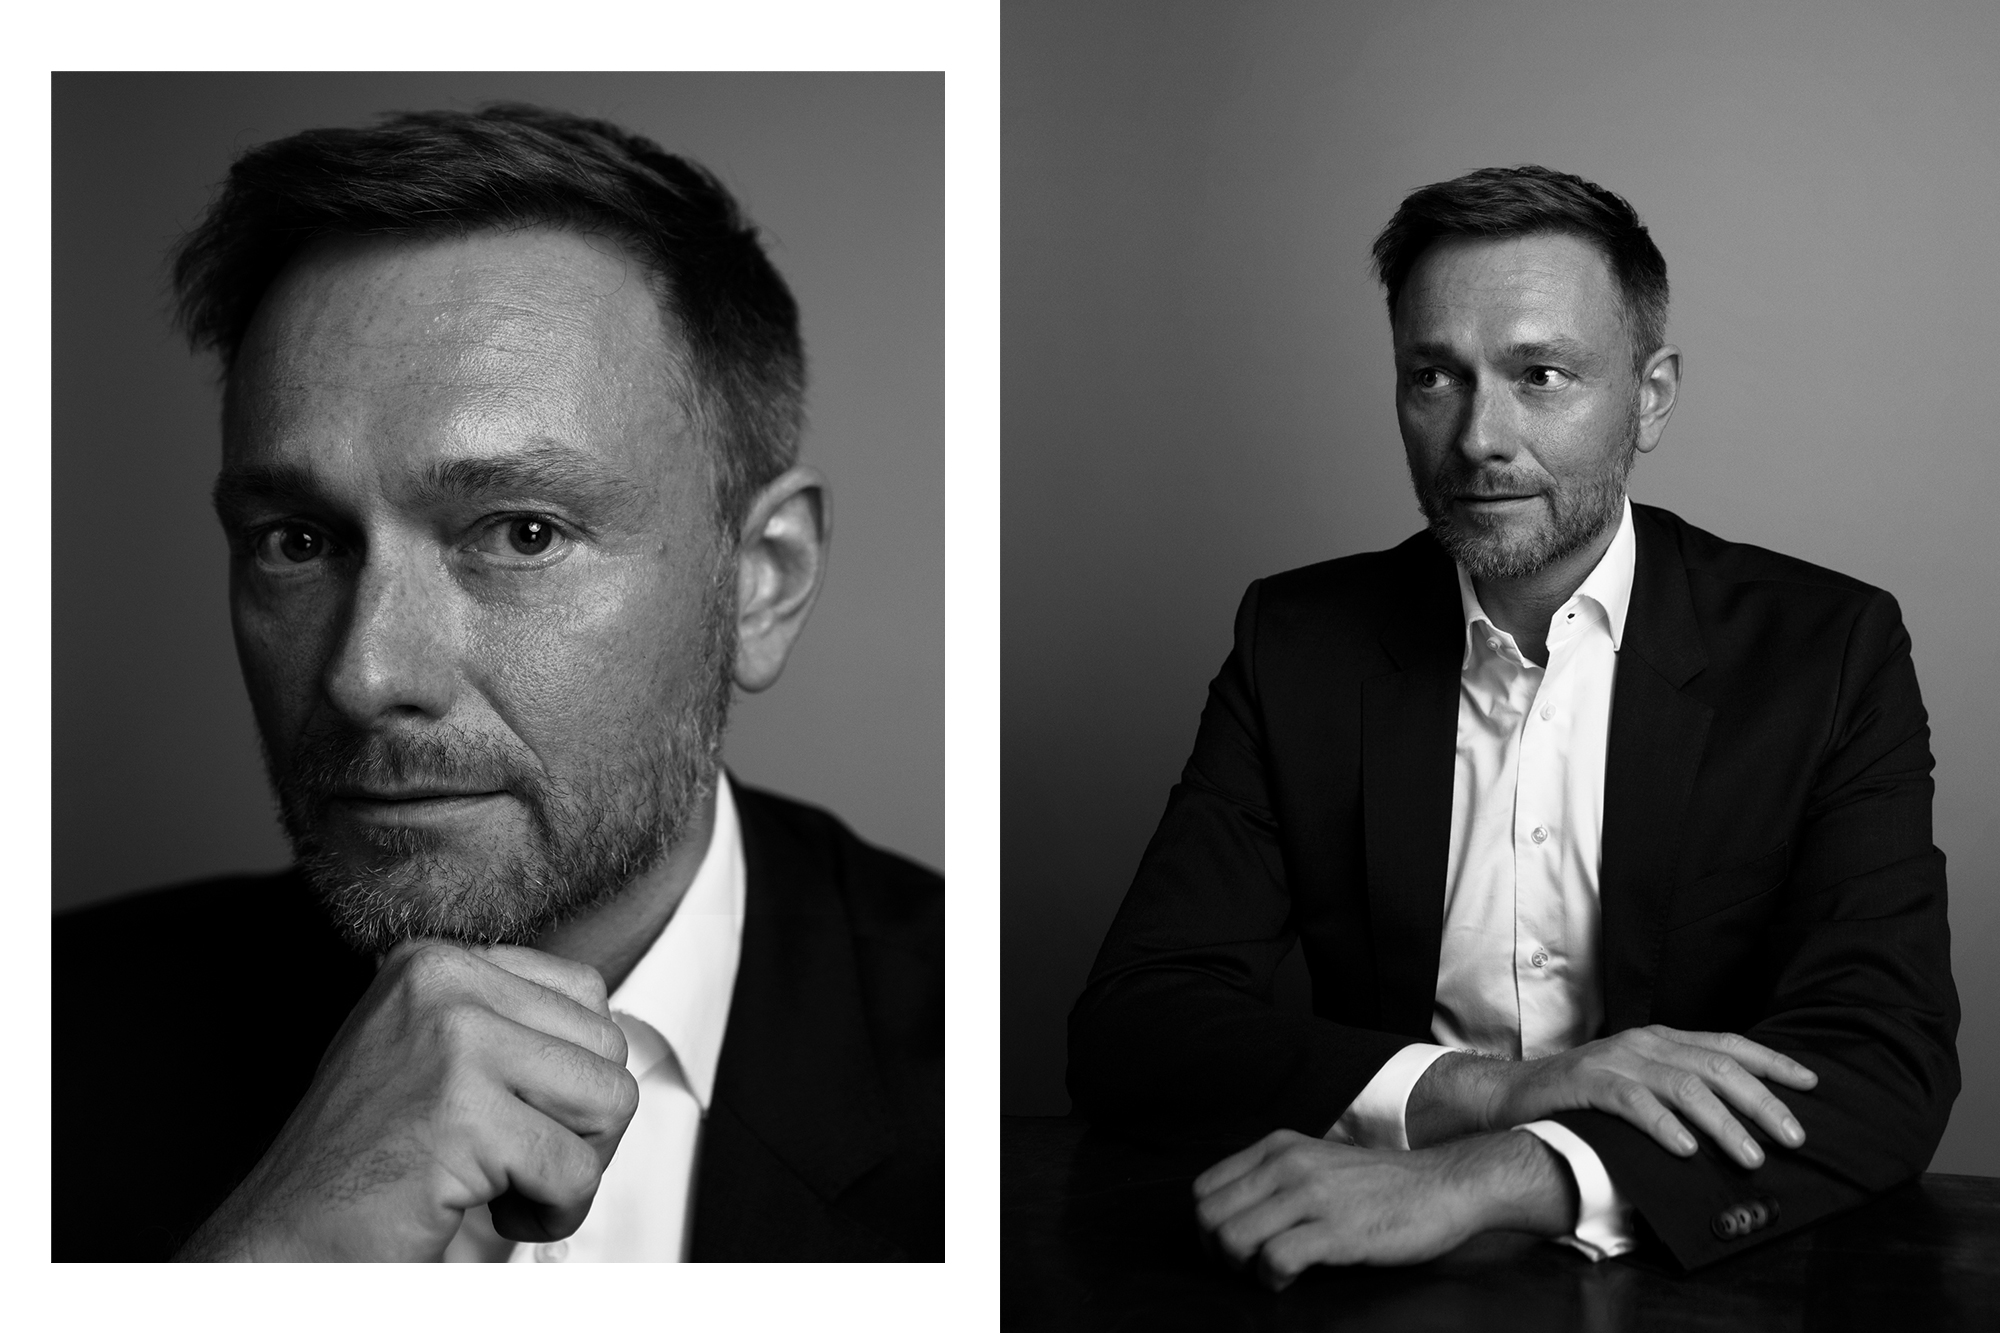 Christian Lindner, german politician, member of the Bundestag and leader of the liberal Free Democratic Party of Germany (FDP) photographed by Maximilian Baier